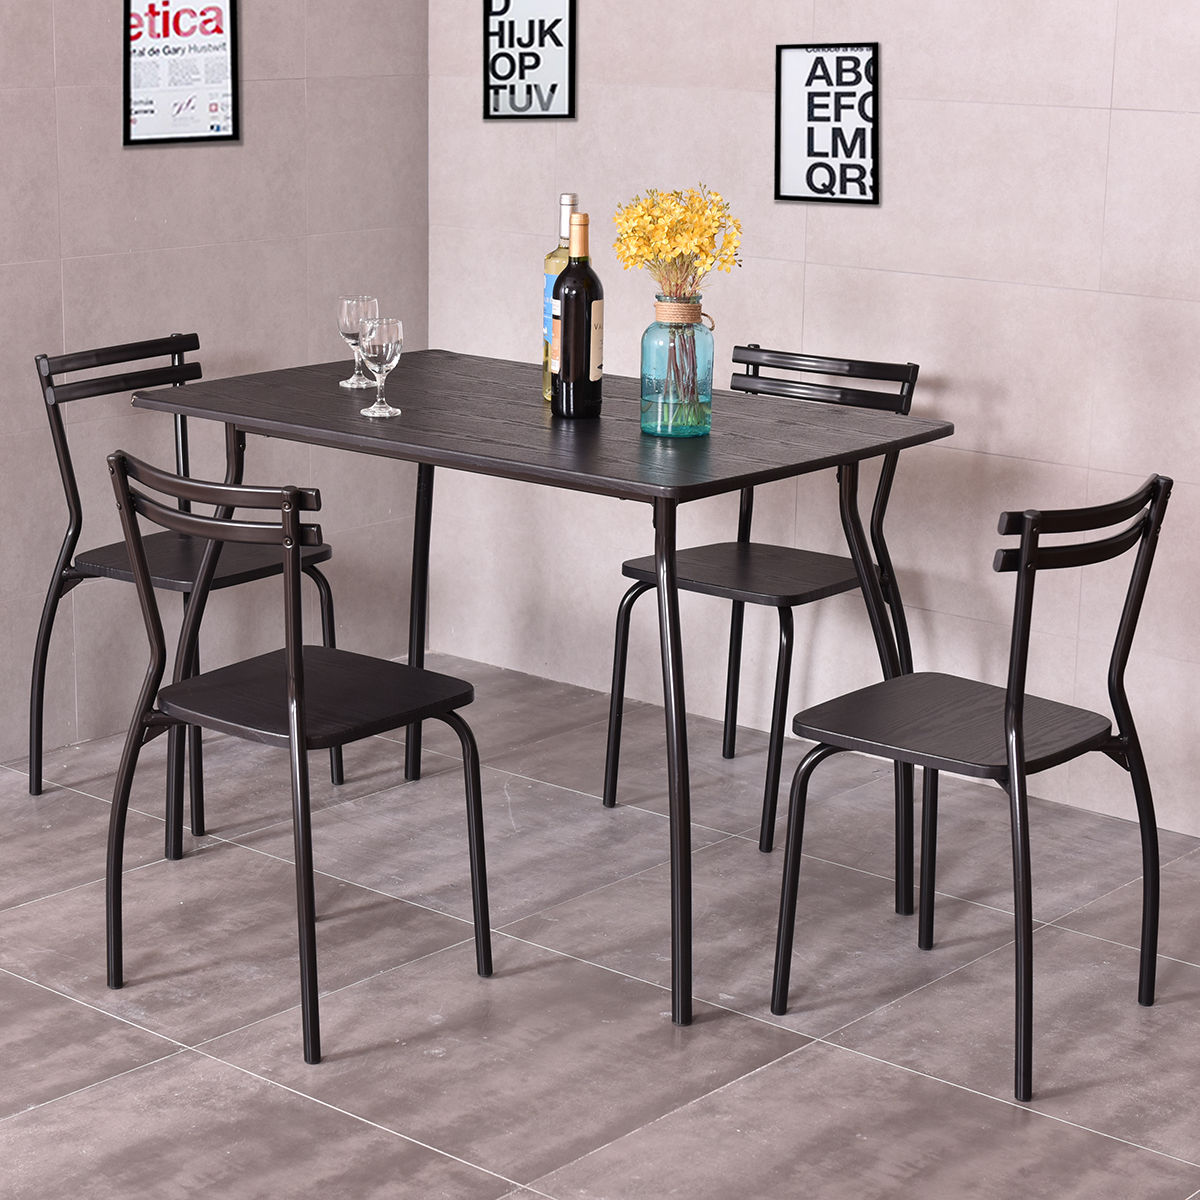 Giantex 5 Piece Dining Set Table and 4 Chairs Modern Home Kitchen Room Breakfast Furniture Wood Dining Table Set HW54170